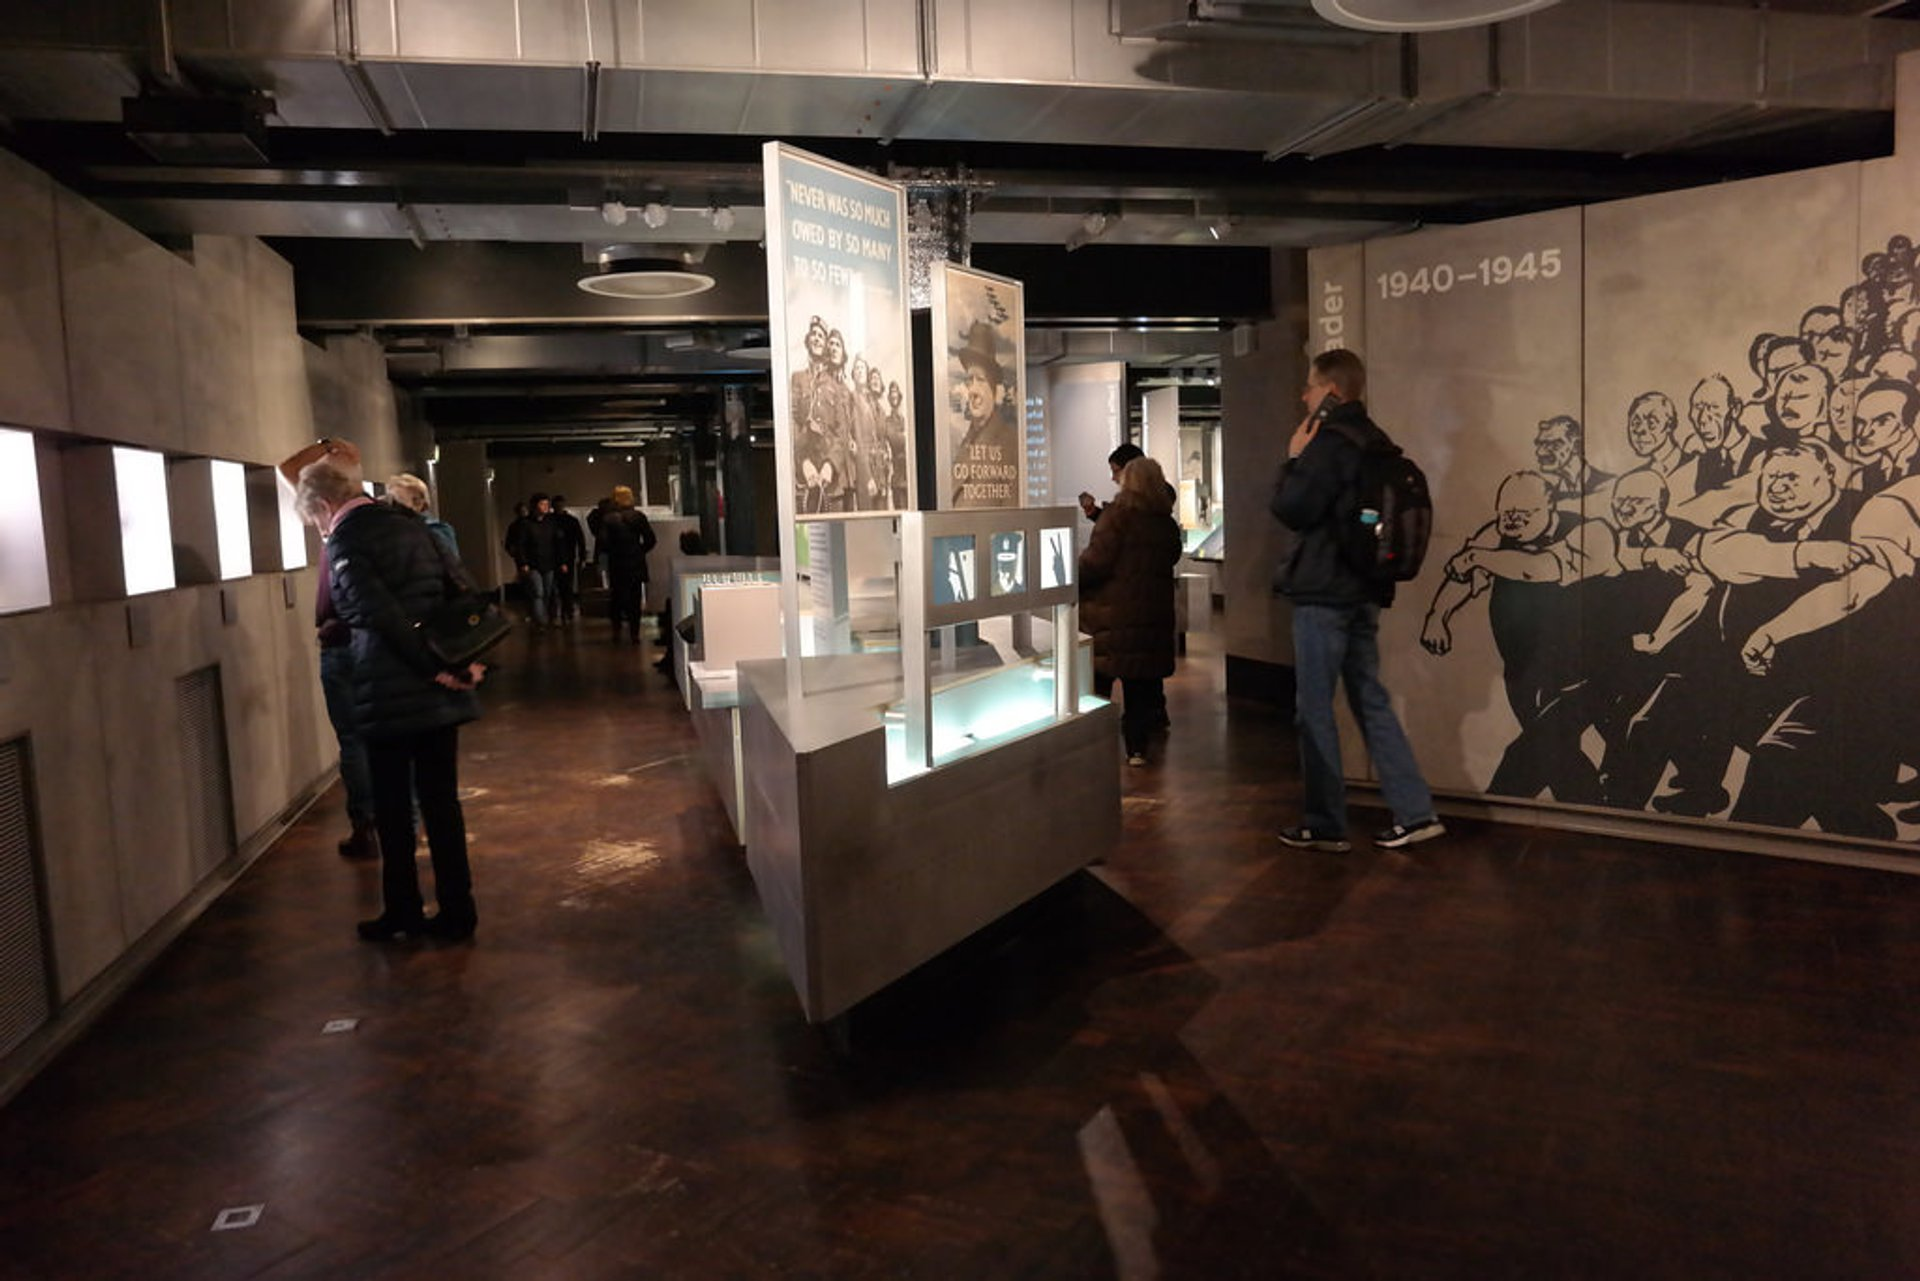 Best time to see Churchill War Rooms in London 2019